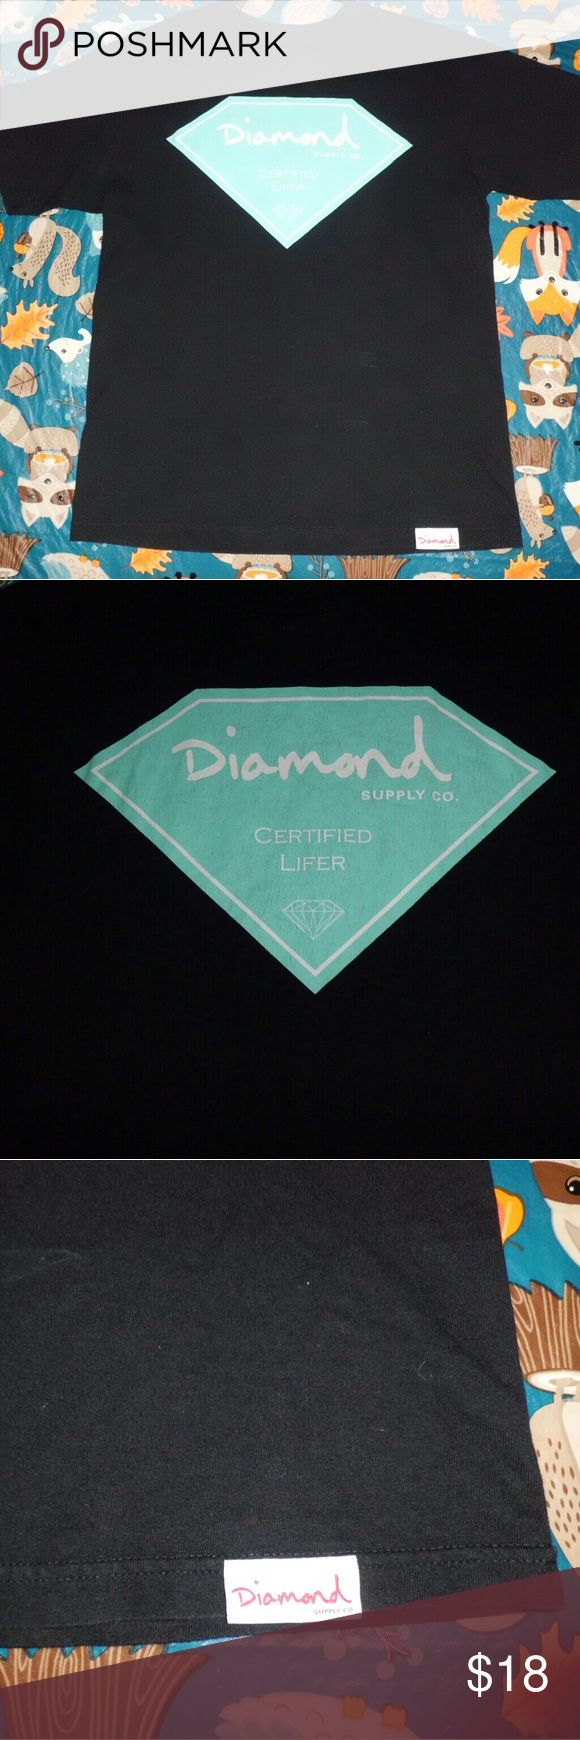 Diamond Supply Co Medium Black Tee! This shirt is in great condition. Made by Diamond Supply Company, a brand known for quality shirts and clothing. It is black with Certified Lifer printed on it and a size Medium. Diamond Supply Co. Shirts Tees - Short Sleeve